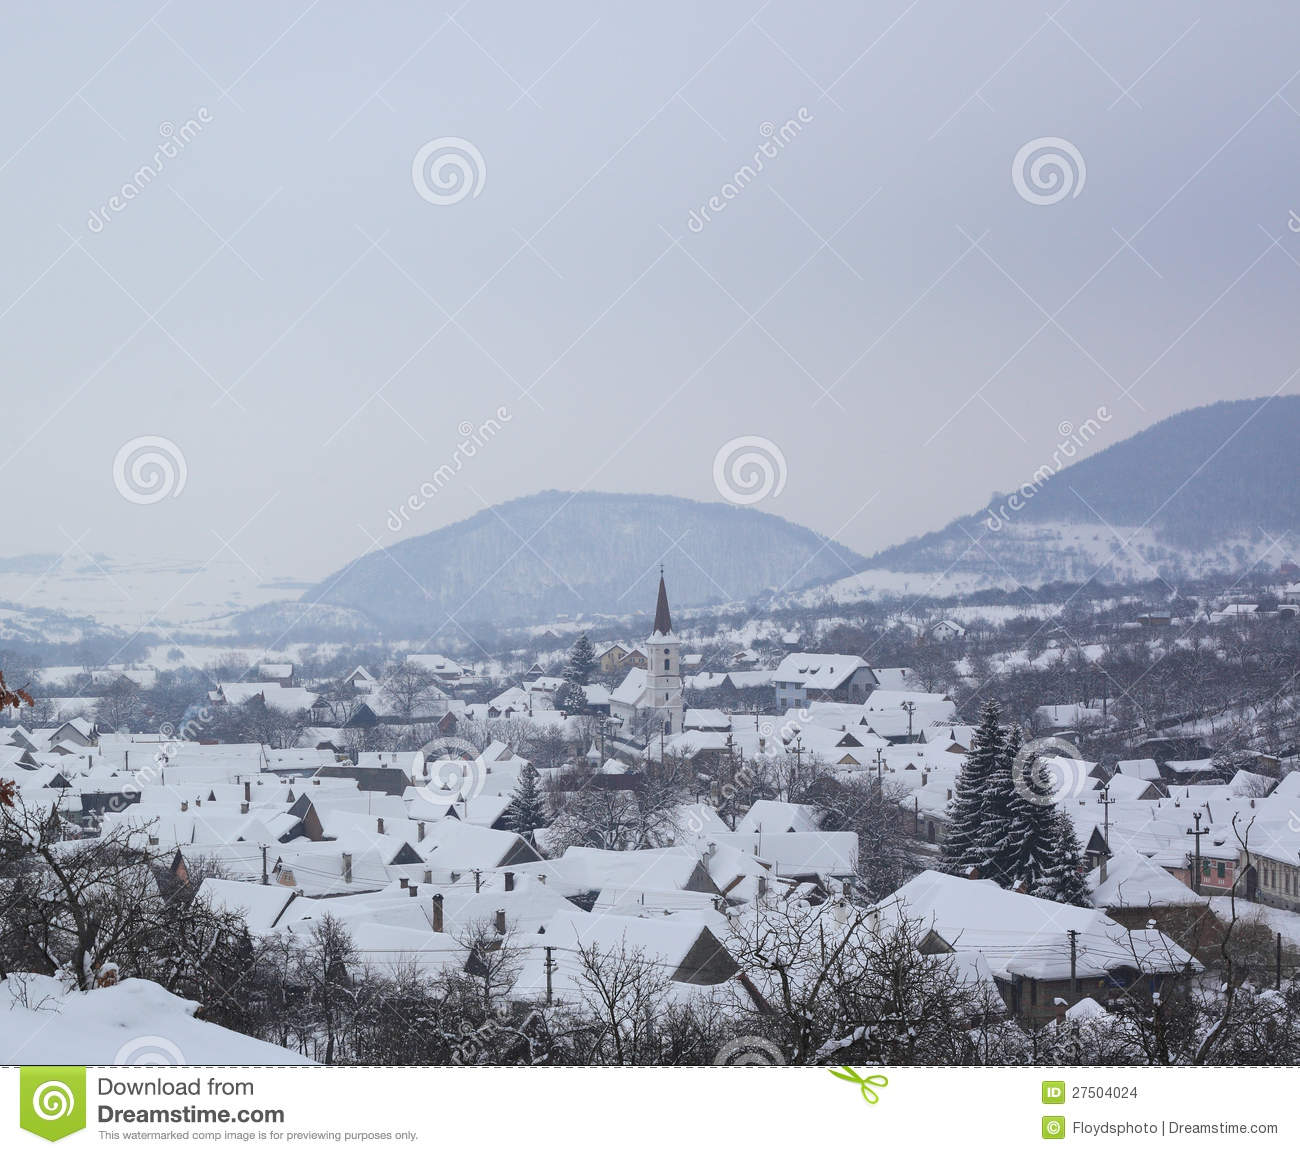 Sibiel in the freezing winter time